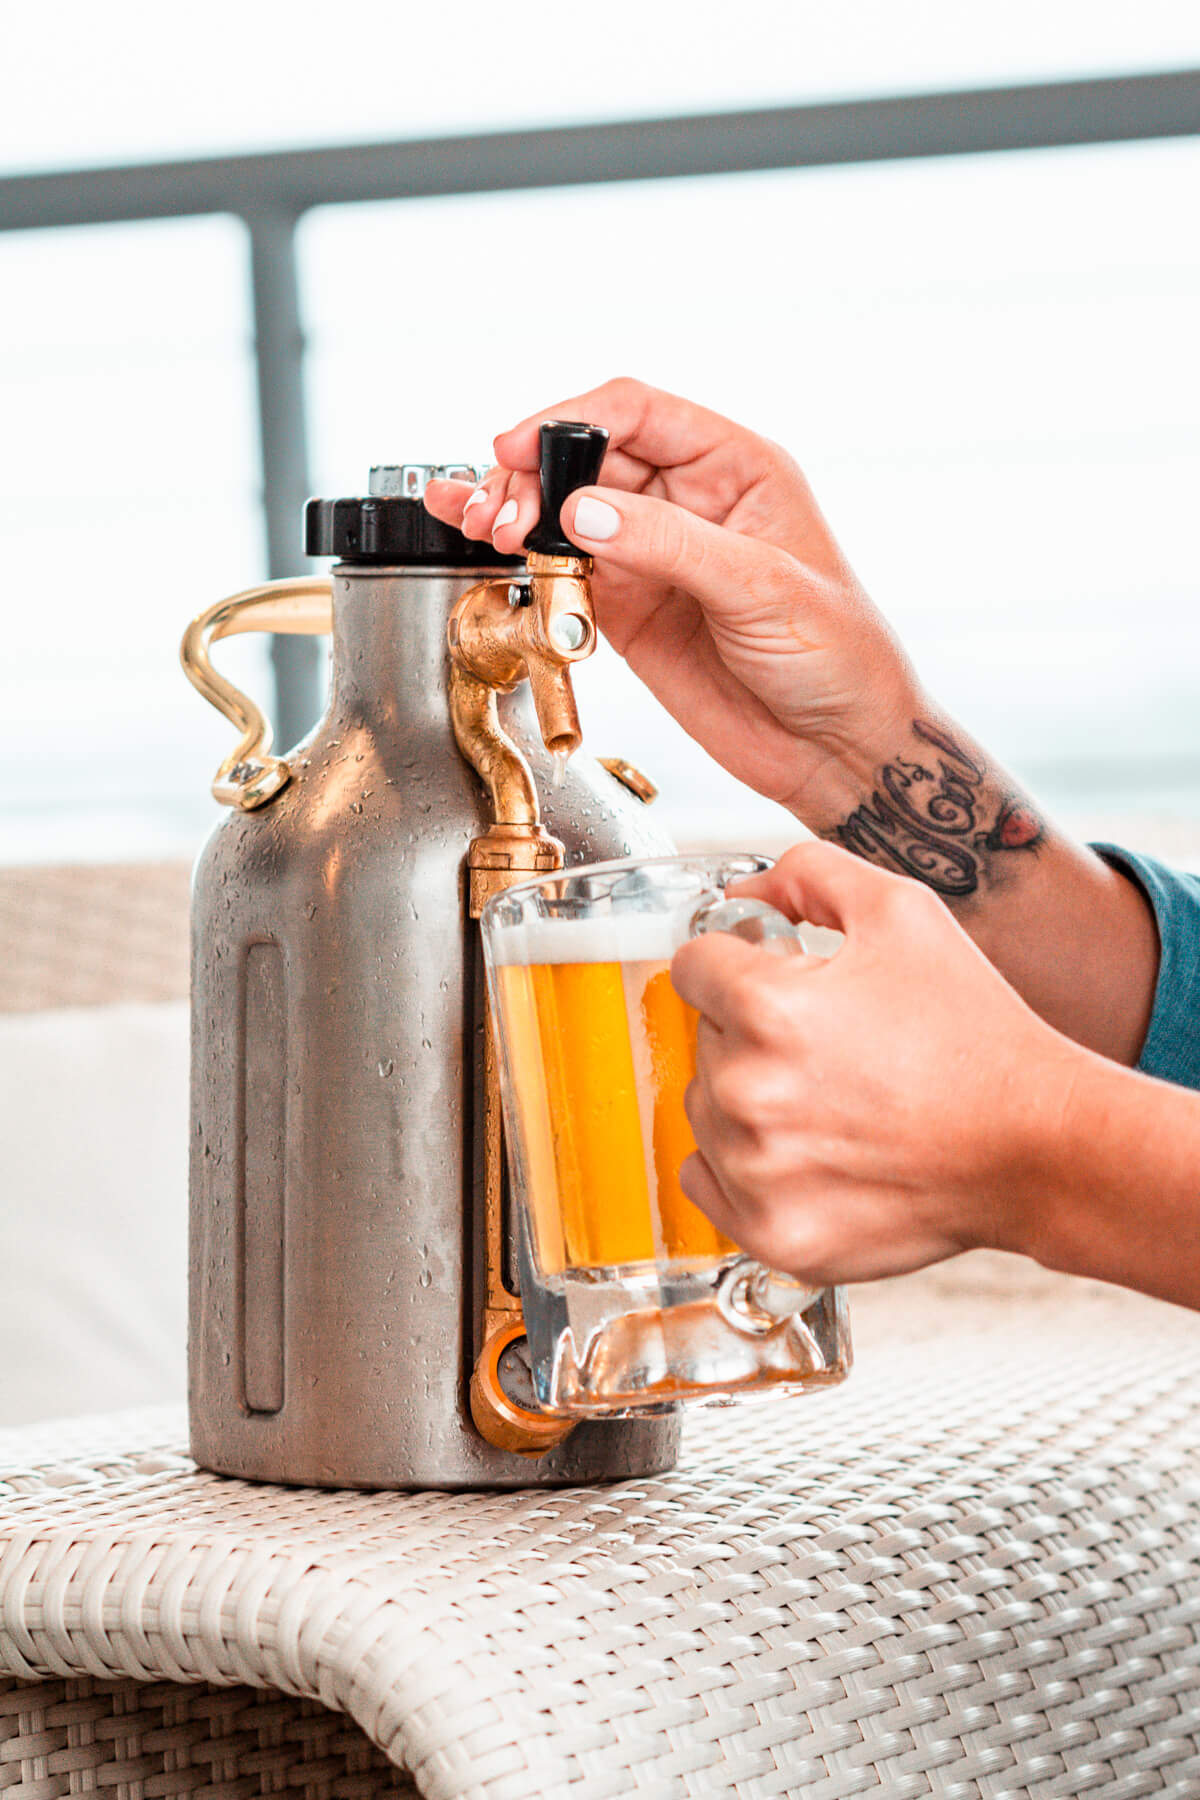 uKeg Pressurized beer growler